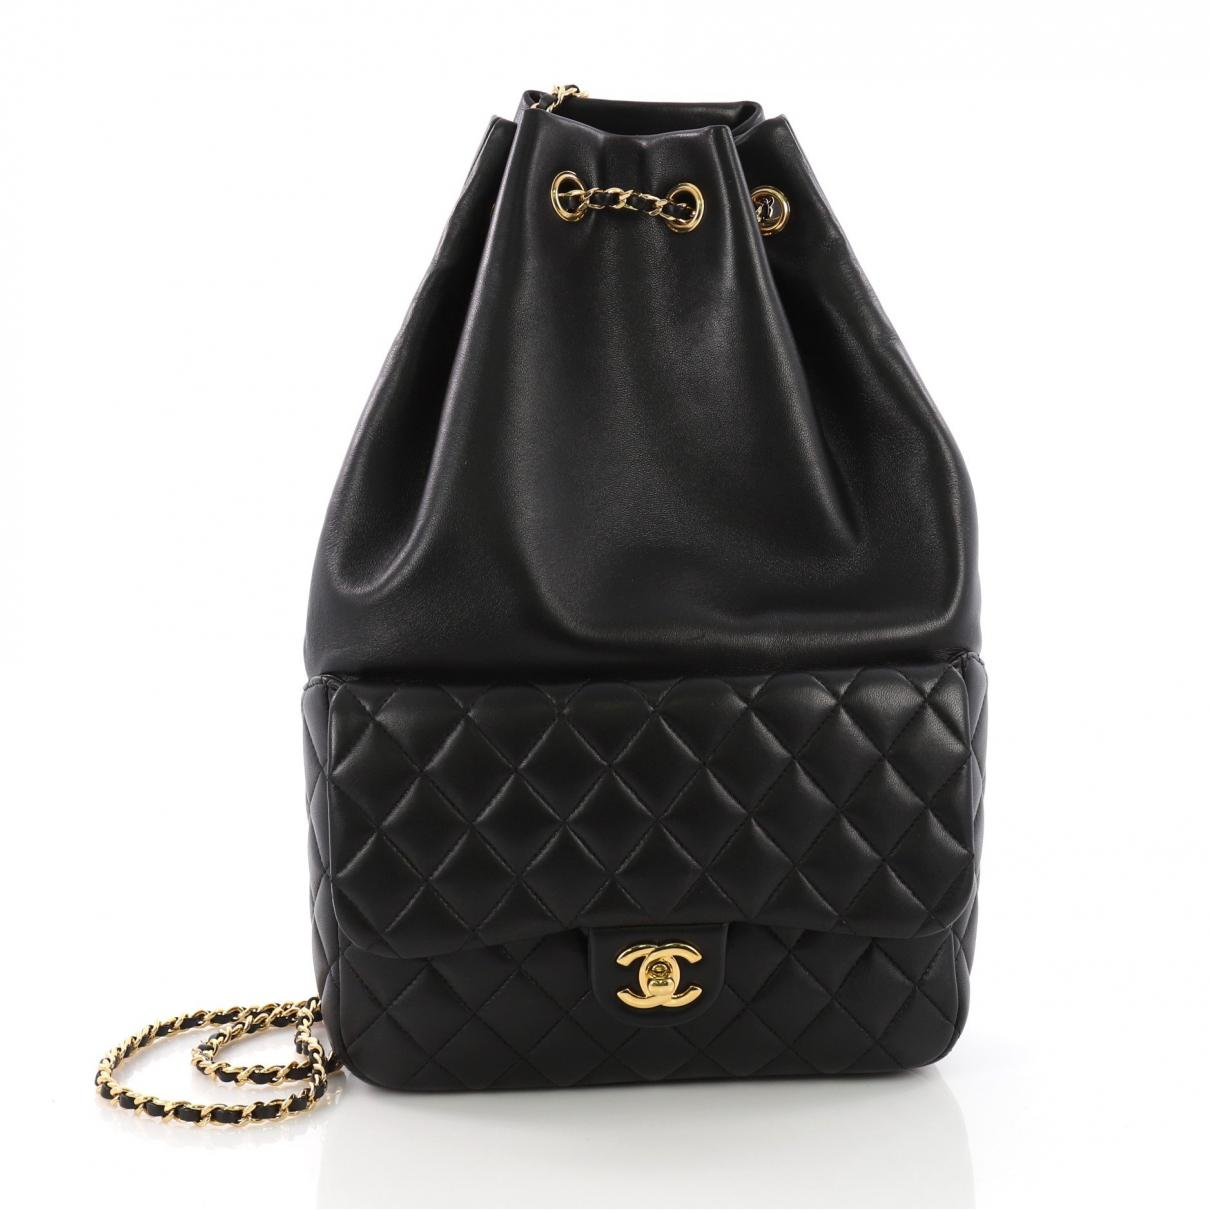 aade64beb36f Lyst - Chanel Black Leather Backpacks in Black